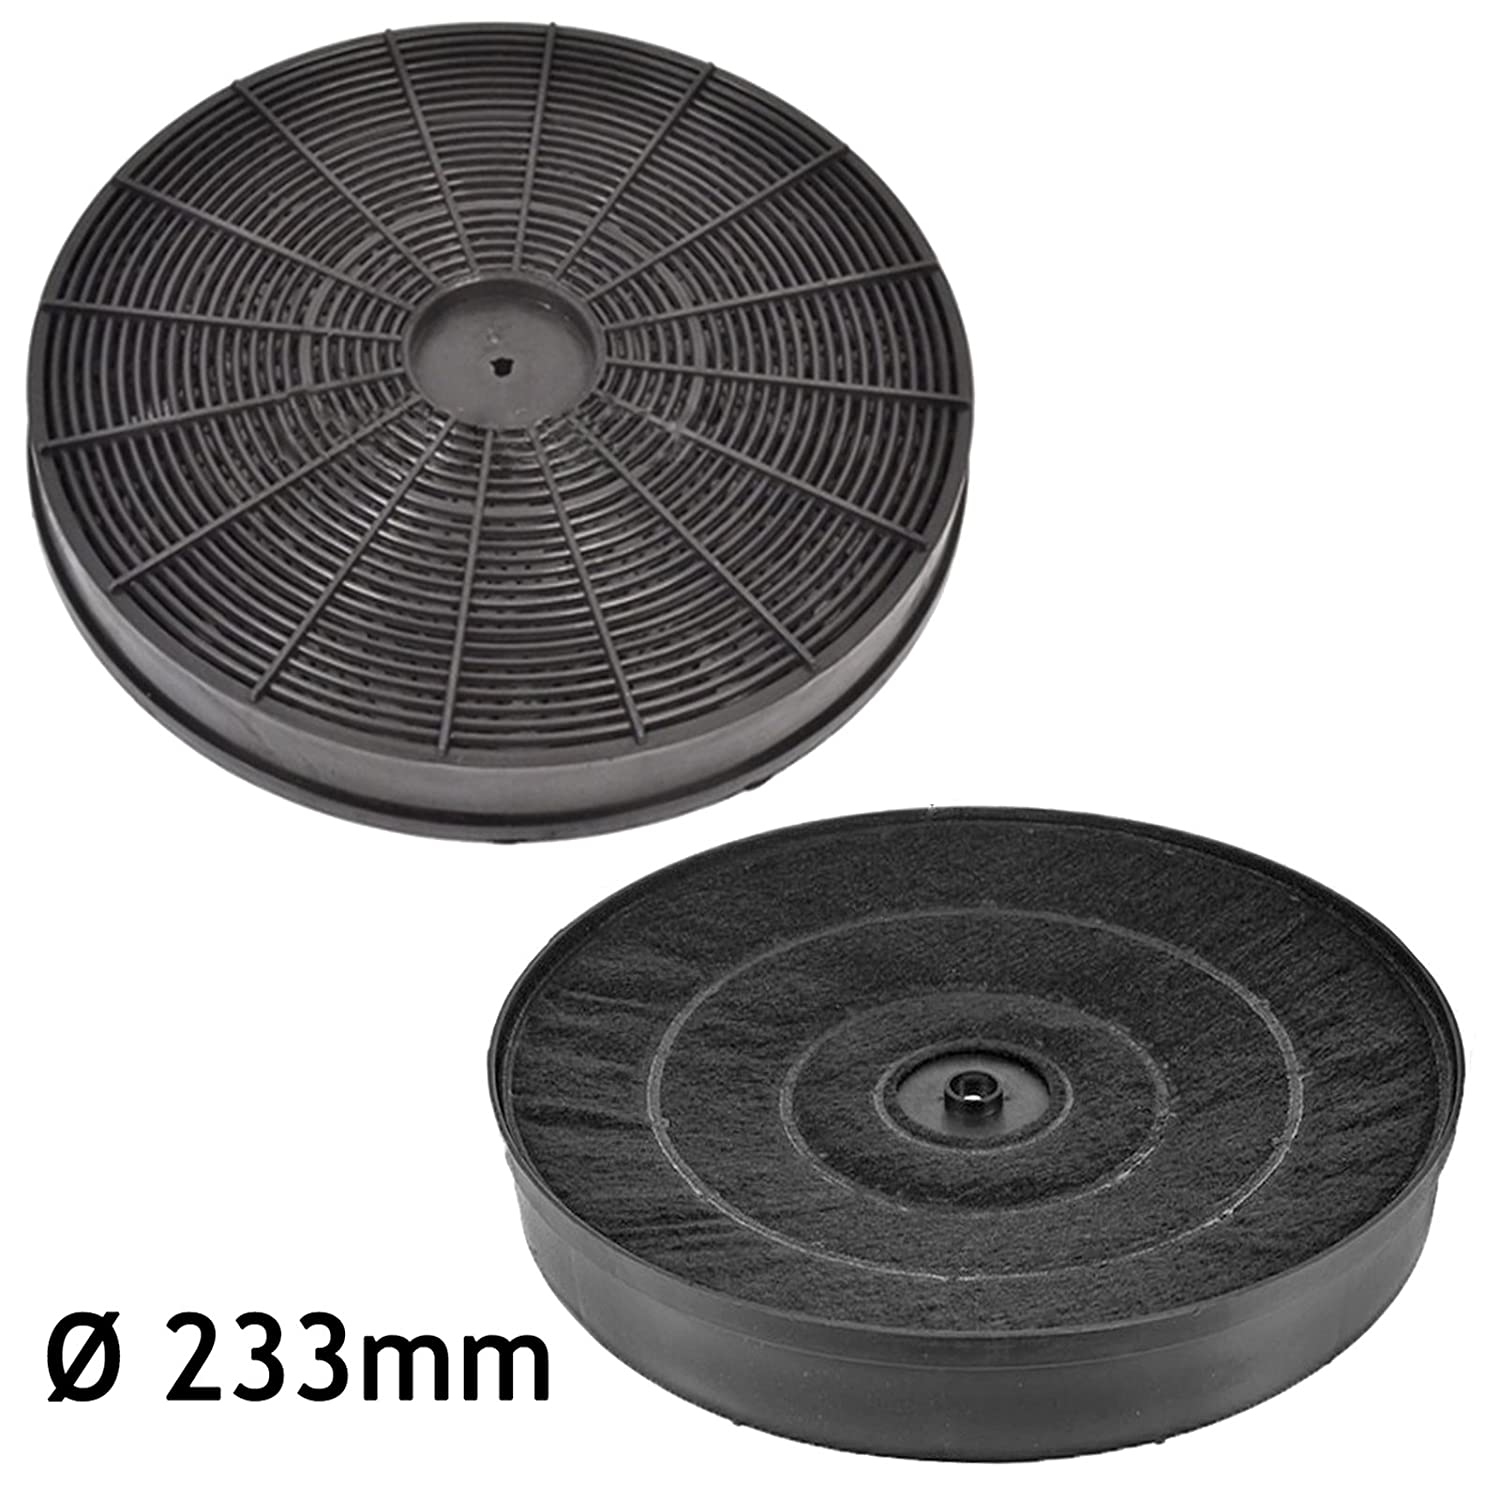 Pack of 2 SPARES2GO Activated Carbon Vent Filter for Tricity Bendix CH640 Extractor Fan Cooker Hood